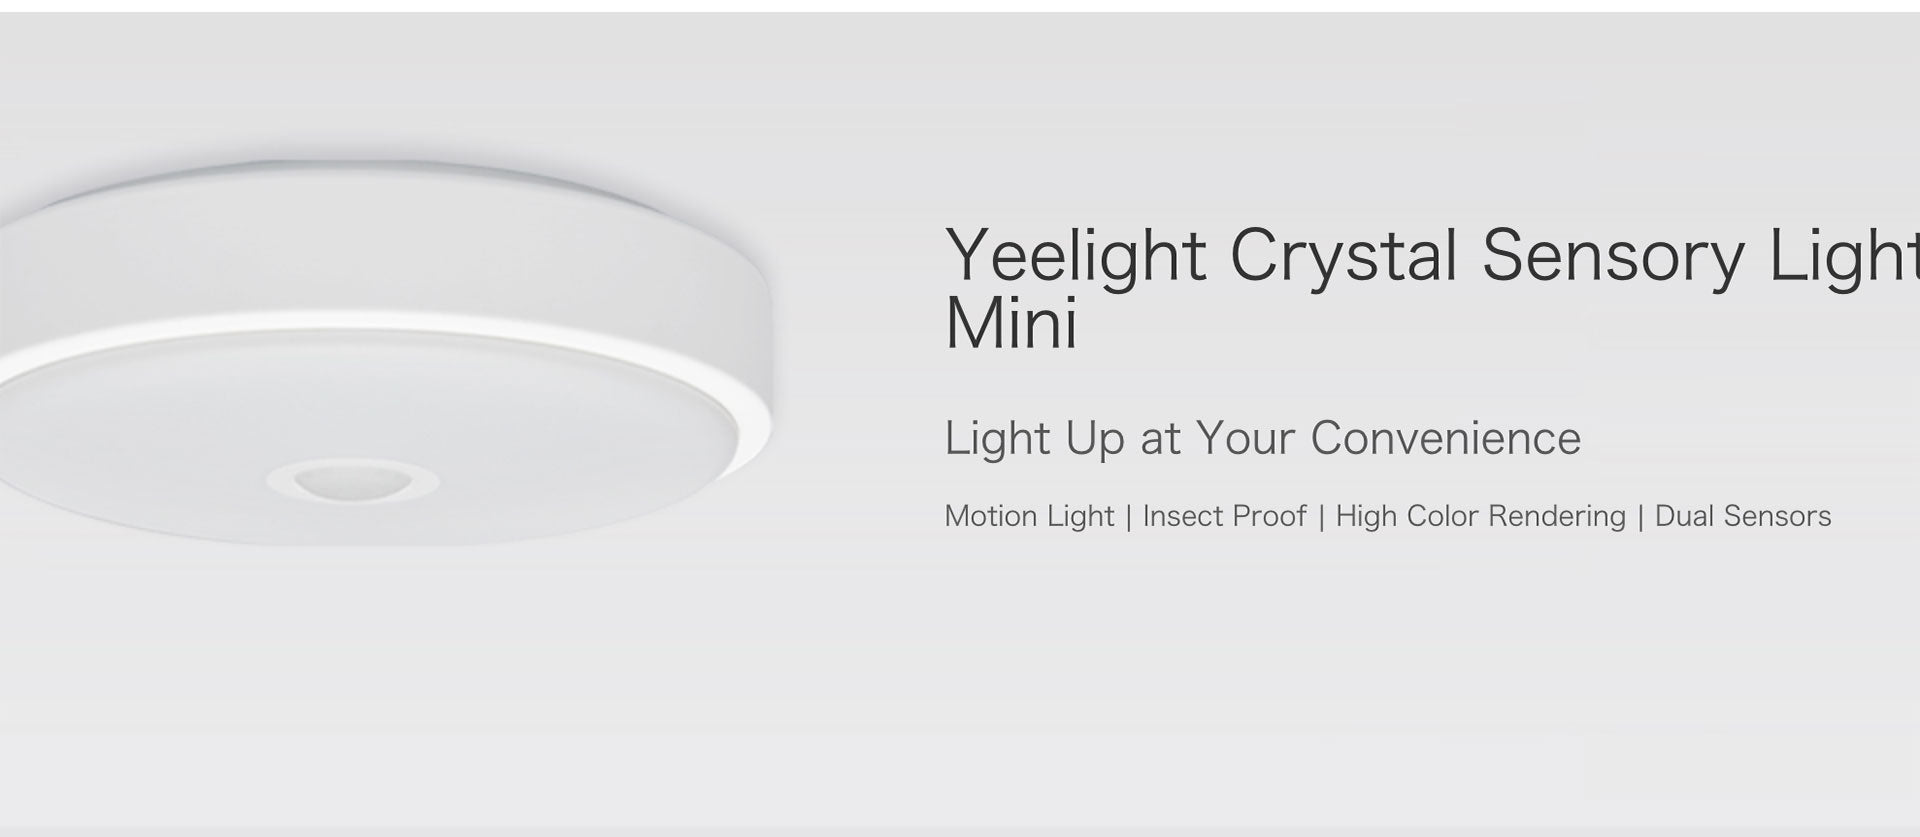 Yeelight Sensor Led Ceiling Mini Human Body / Motion Sensor Light For Smart Home